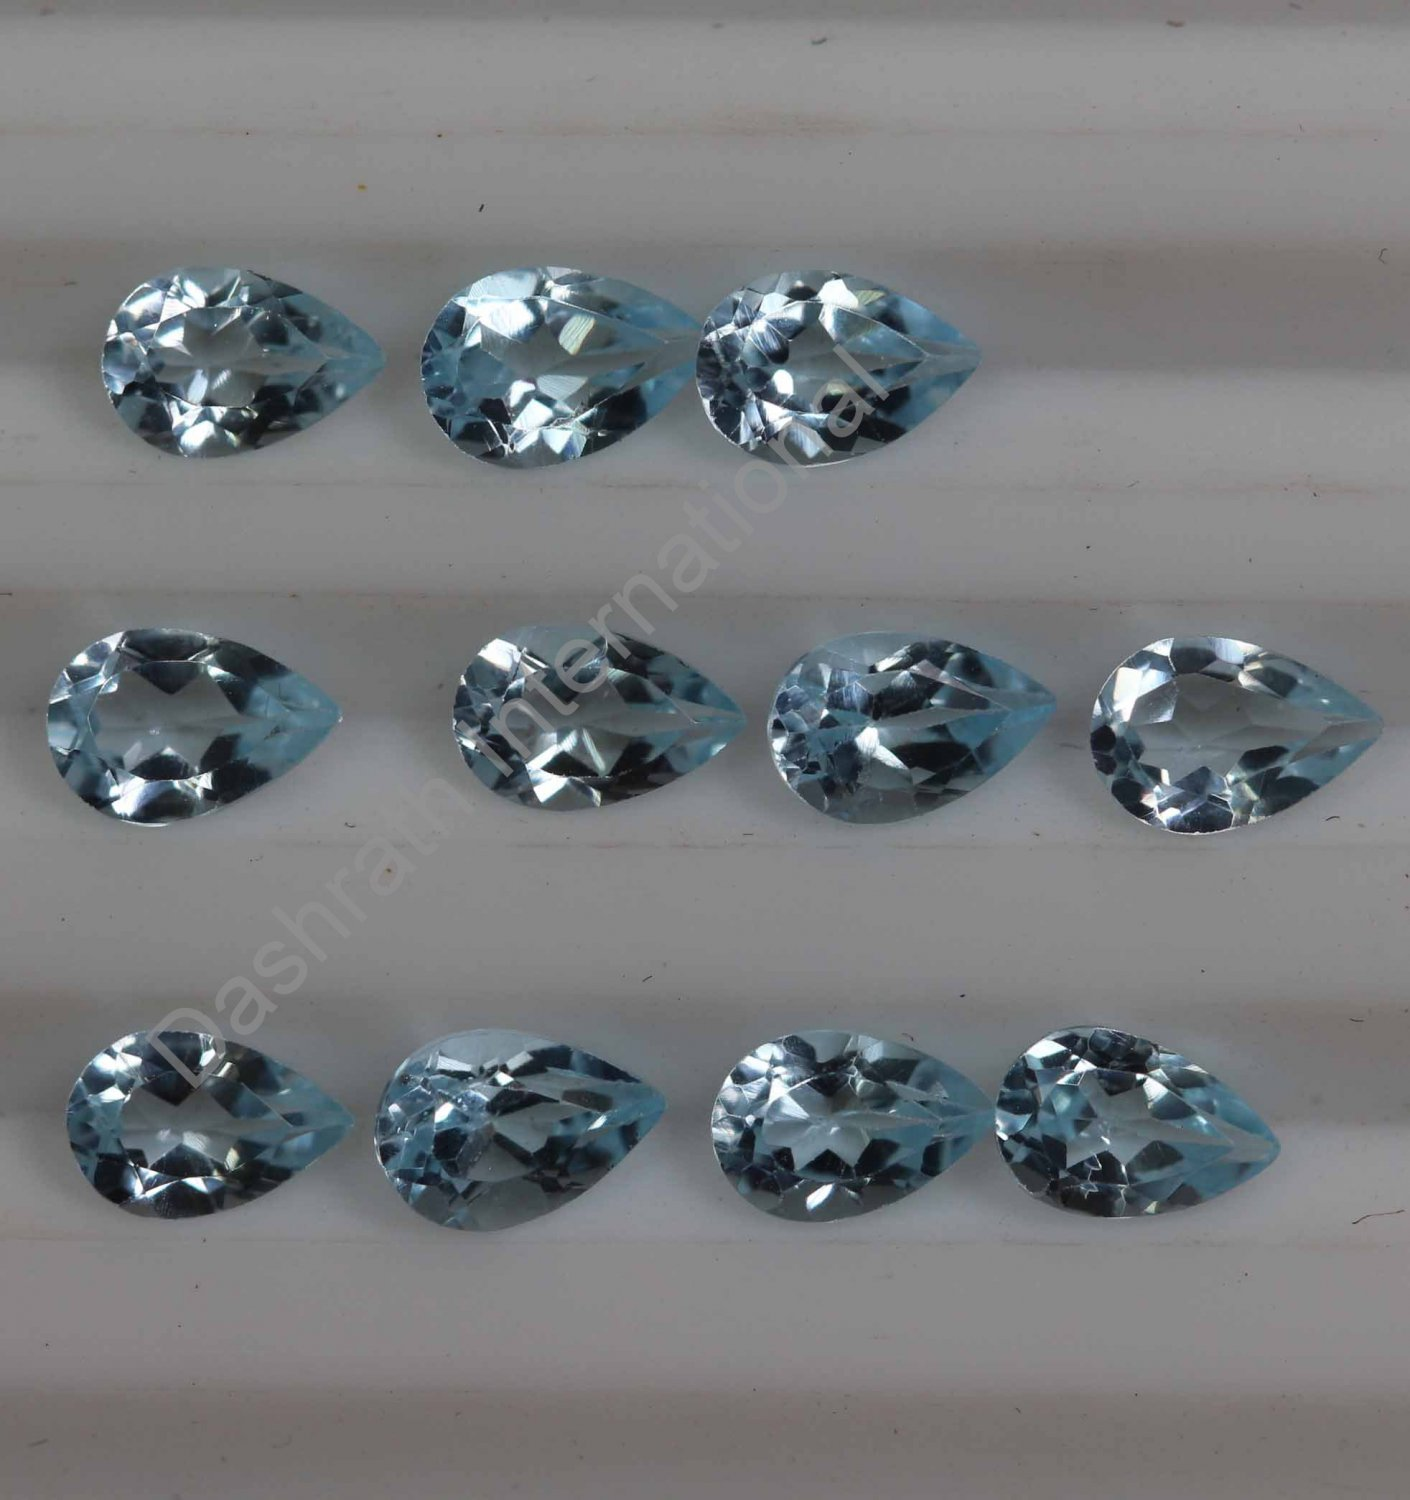 4x6mm Natural Sky Blue Topaz Faceted Cut Pear 2 Piece (1 Pair )  Top Quality Loose Gemstone